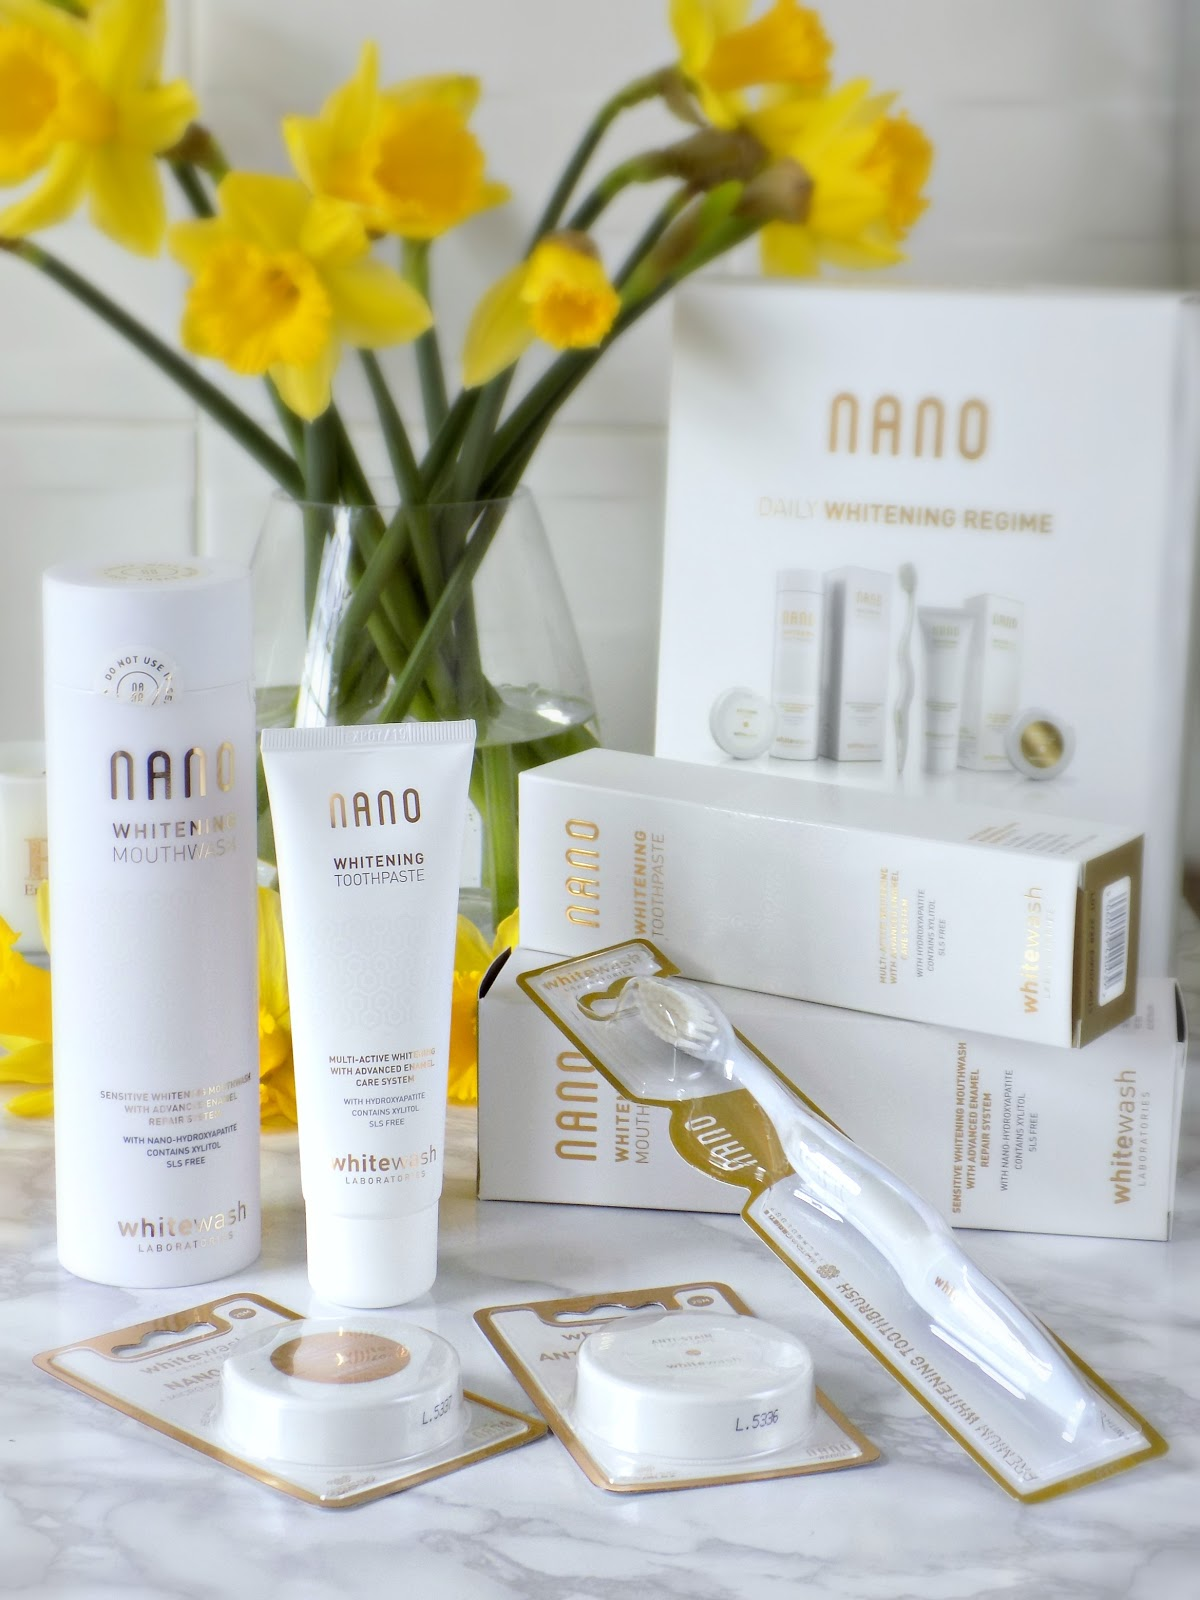 Whitewash Nano Whitening Kit